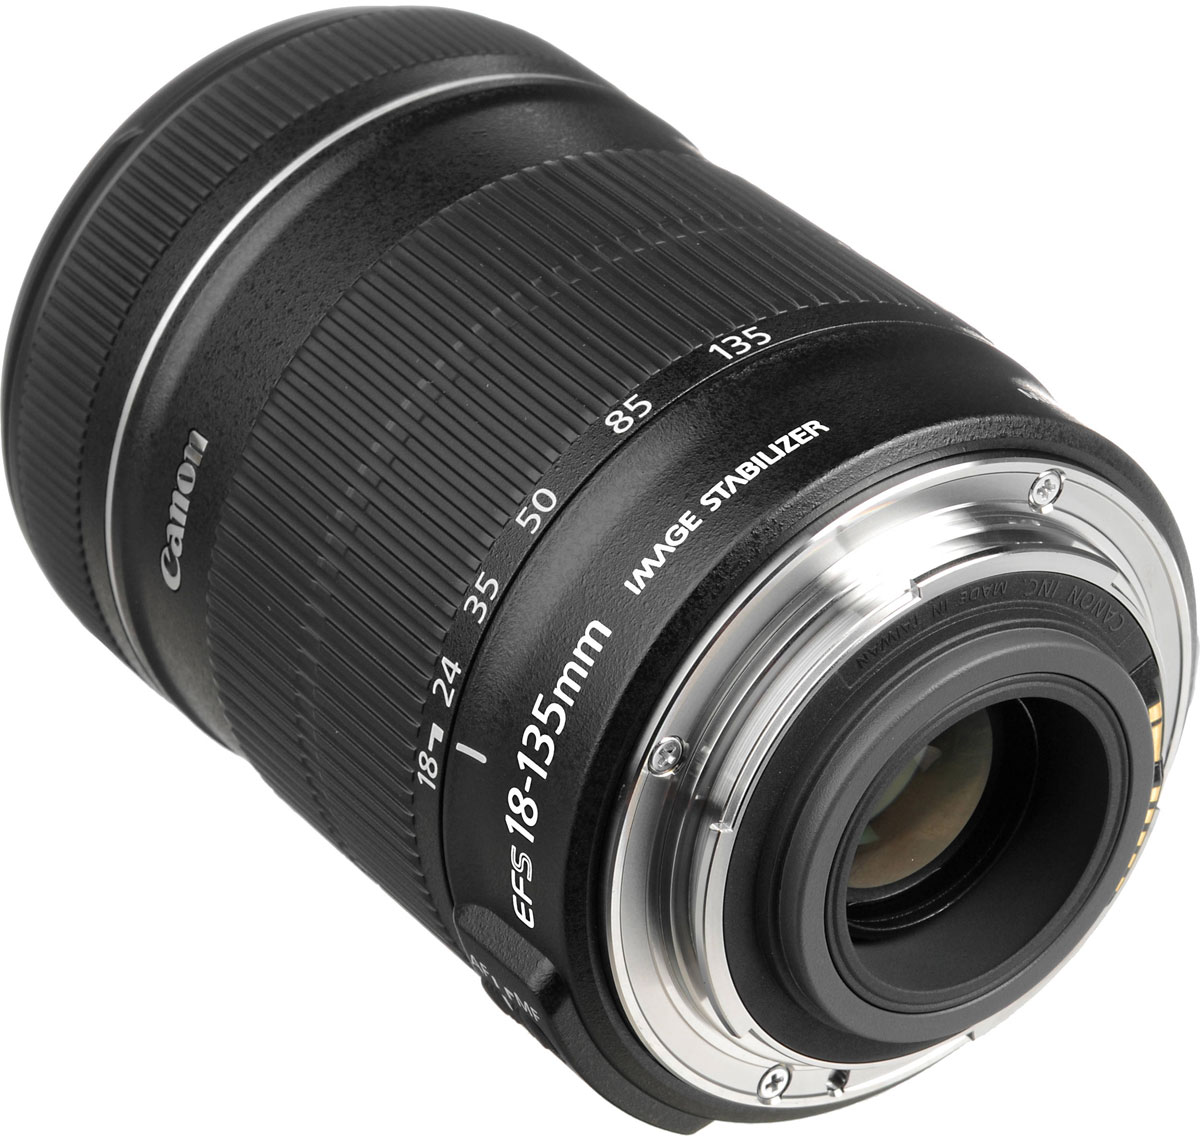 Canon EF-S 18-135mm F3. 5-5. 6 ISобъектив Canon